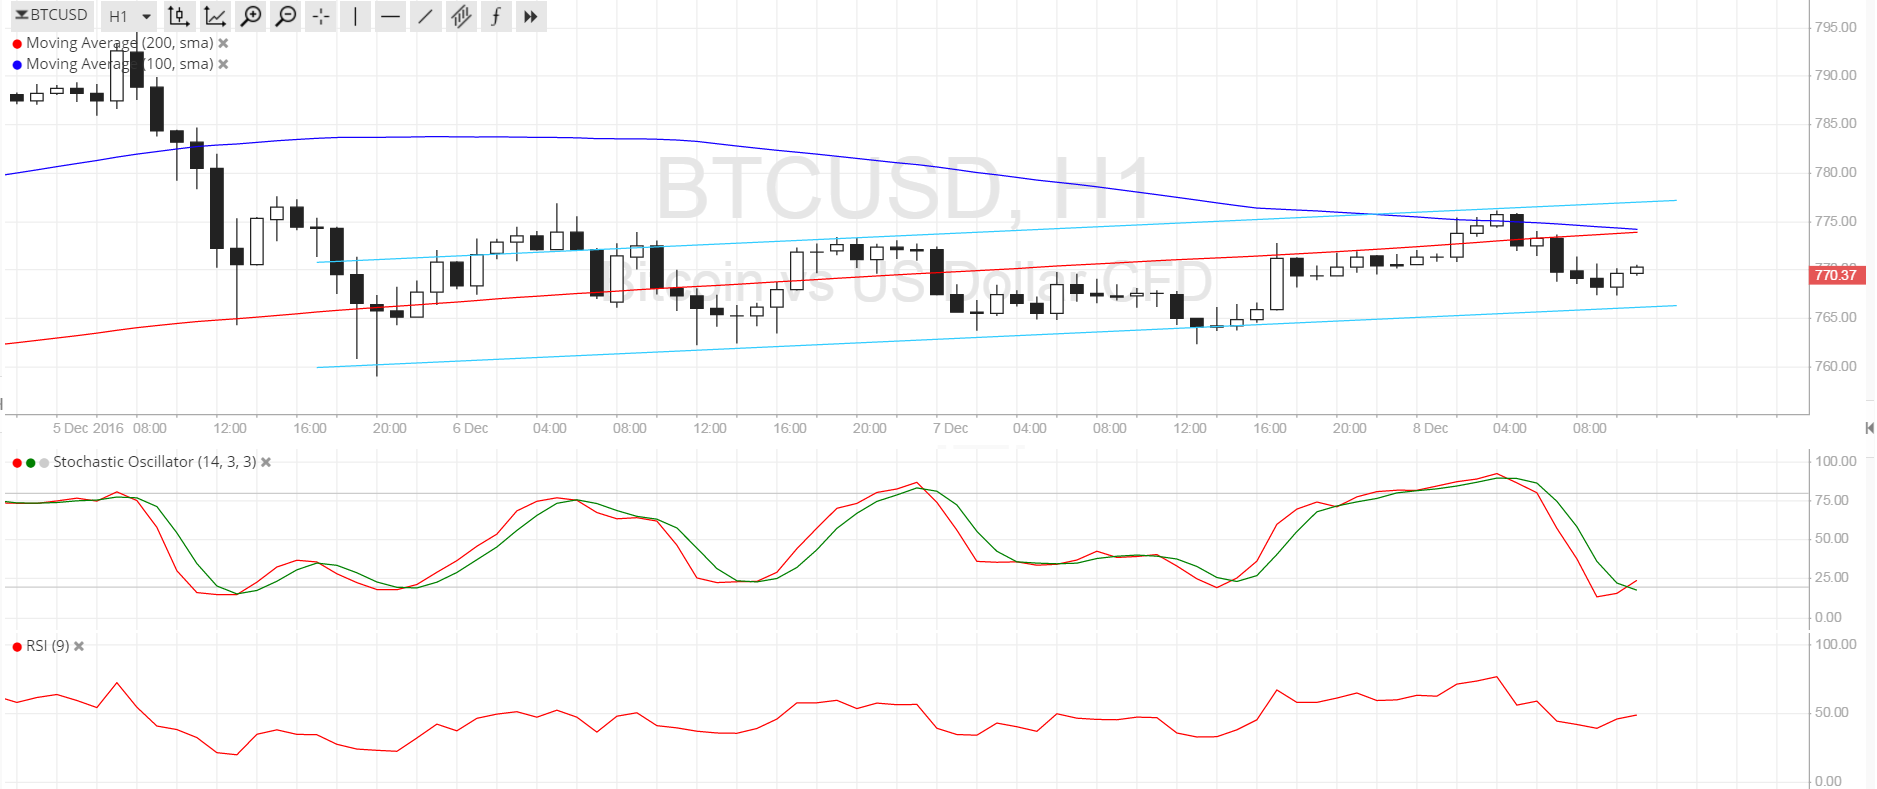 Bitcoin Price Technical Analysis for 12/08/2016 - Small Channel Sighted!